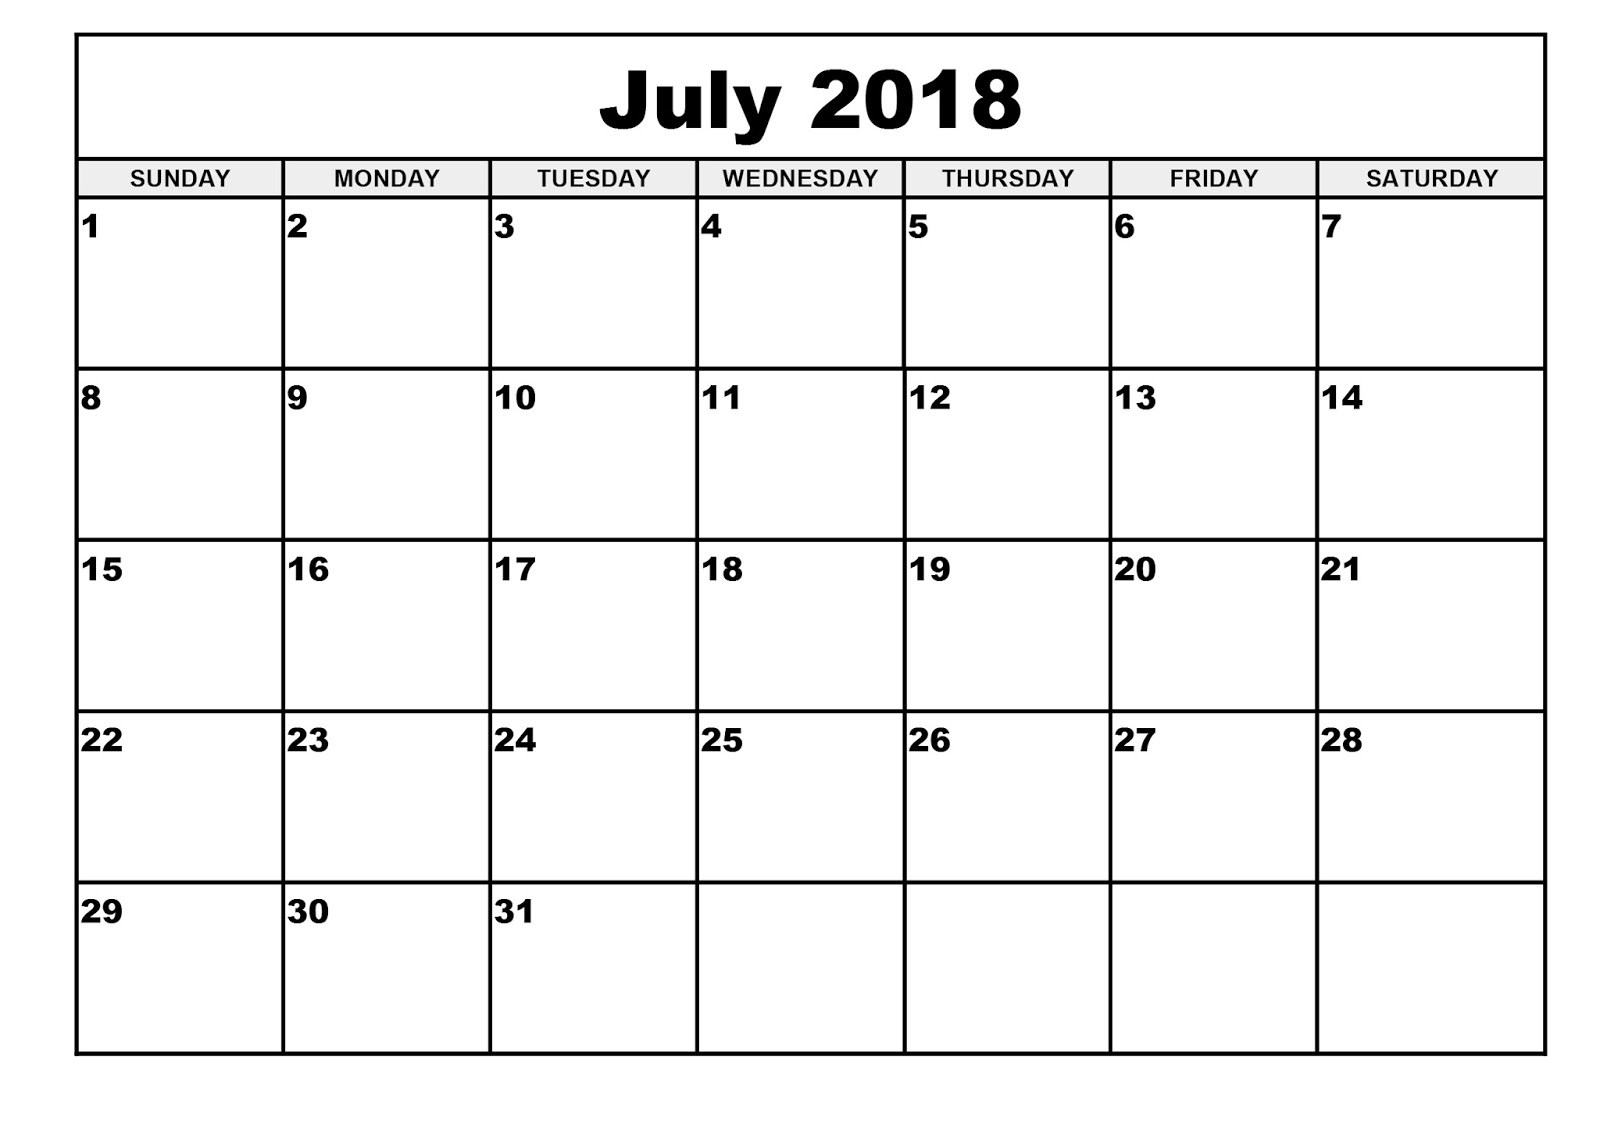 Free July 2018 Calendar Printable Blank Templates - Word Pdf in July Printable Calendar With Hours